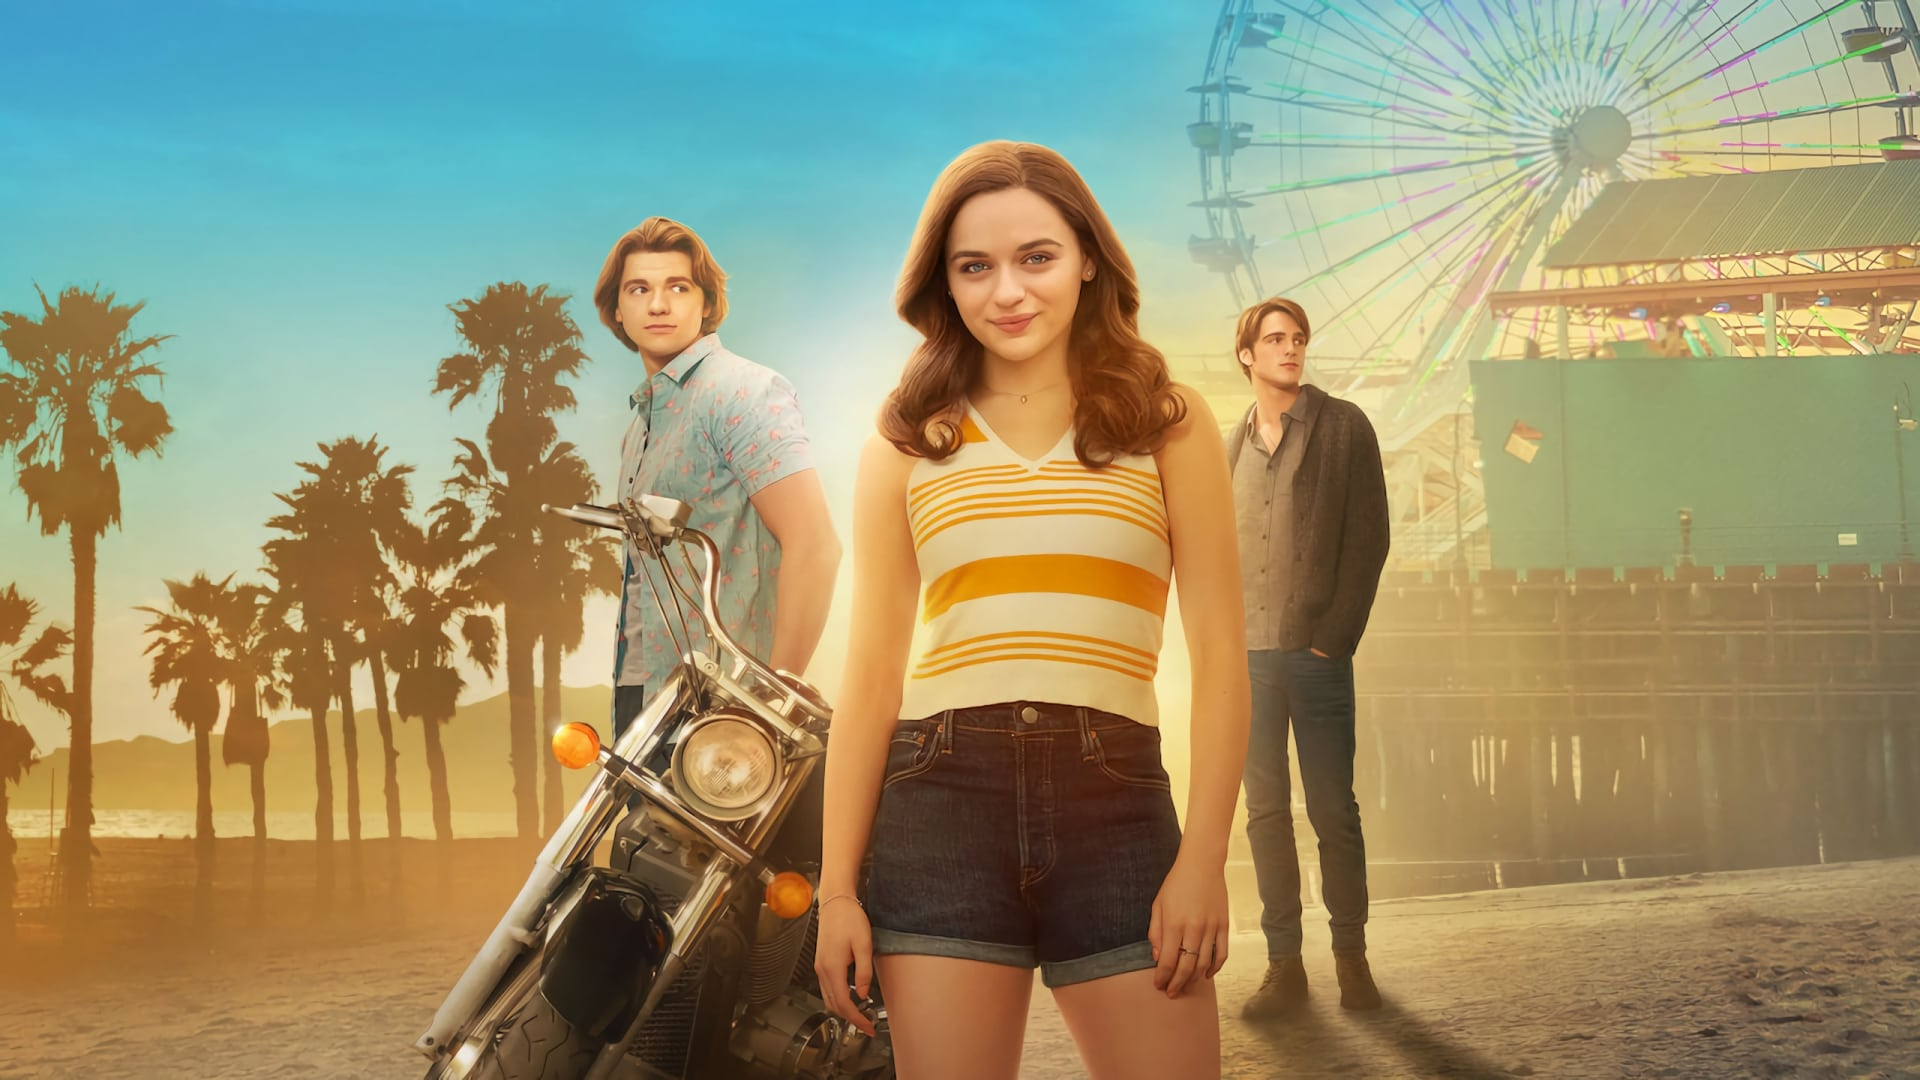 Regarder The Kissing Booth 2 en streaming gratuit